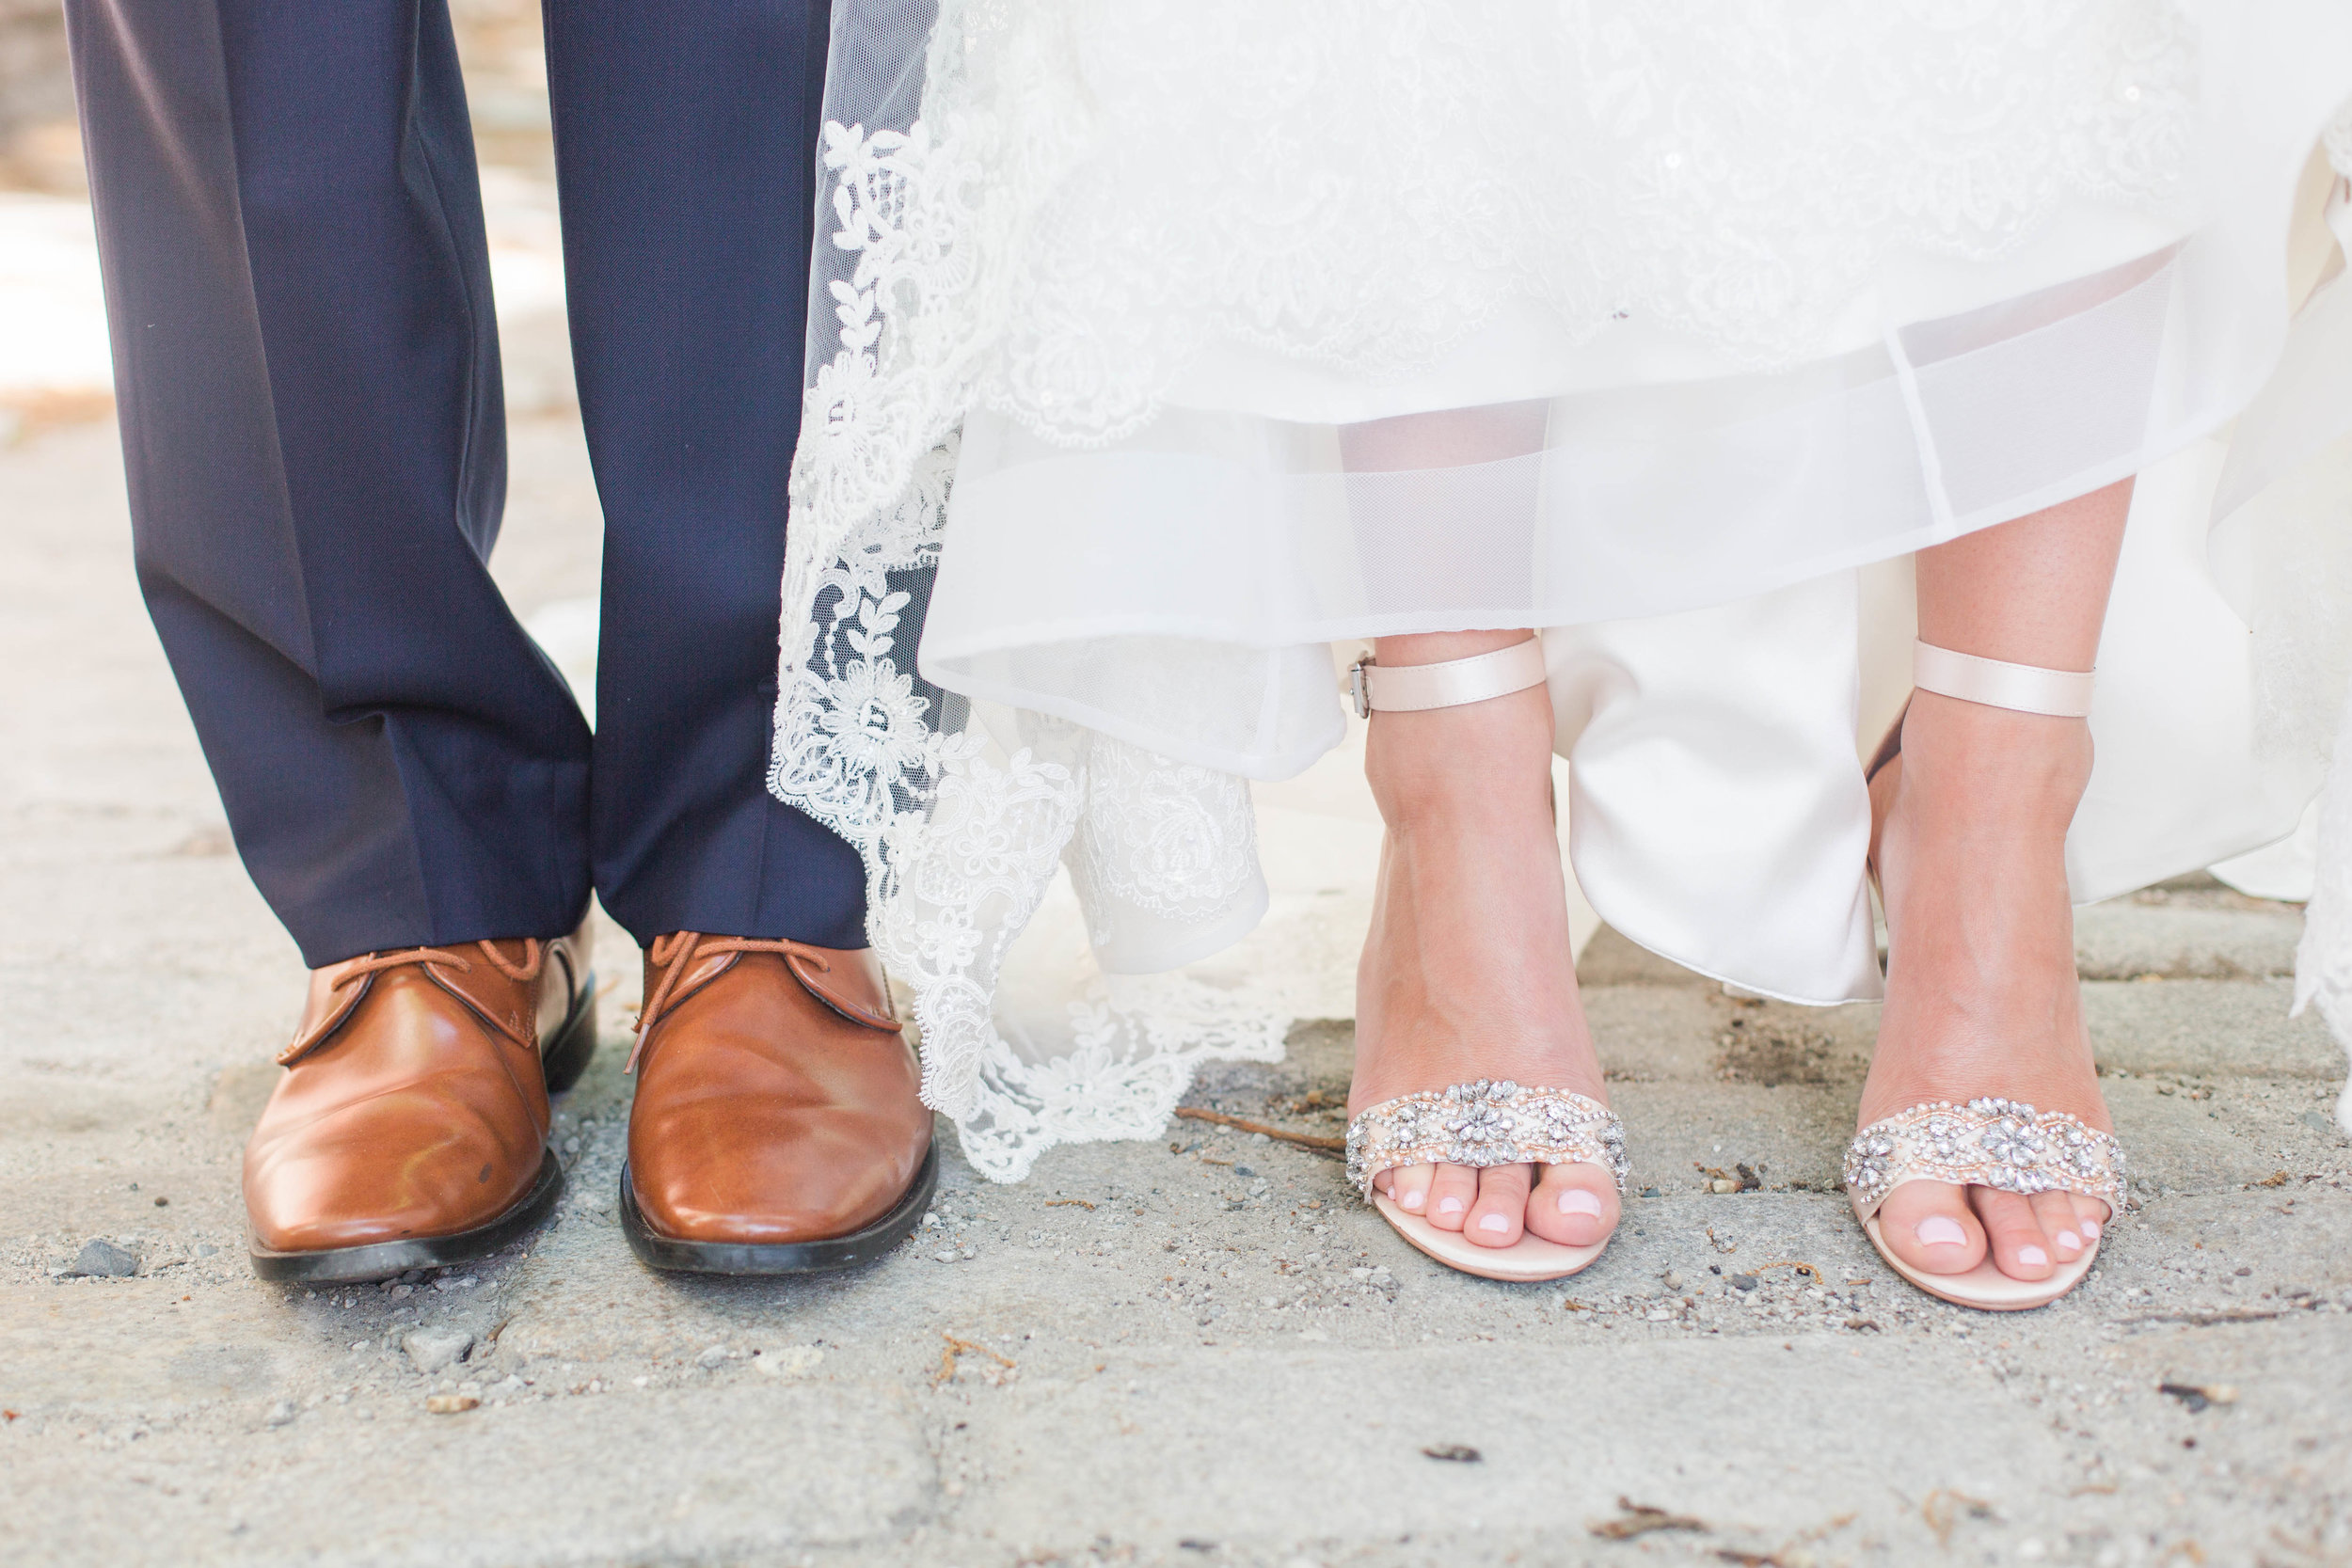 I loved both Rachel and Christian's shoes so I just had to get a shot like this!!